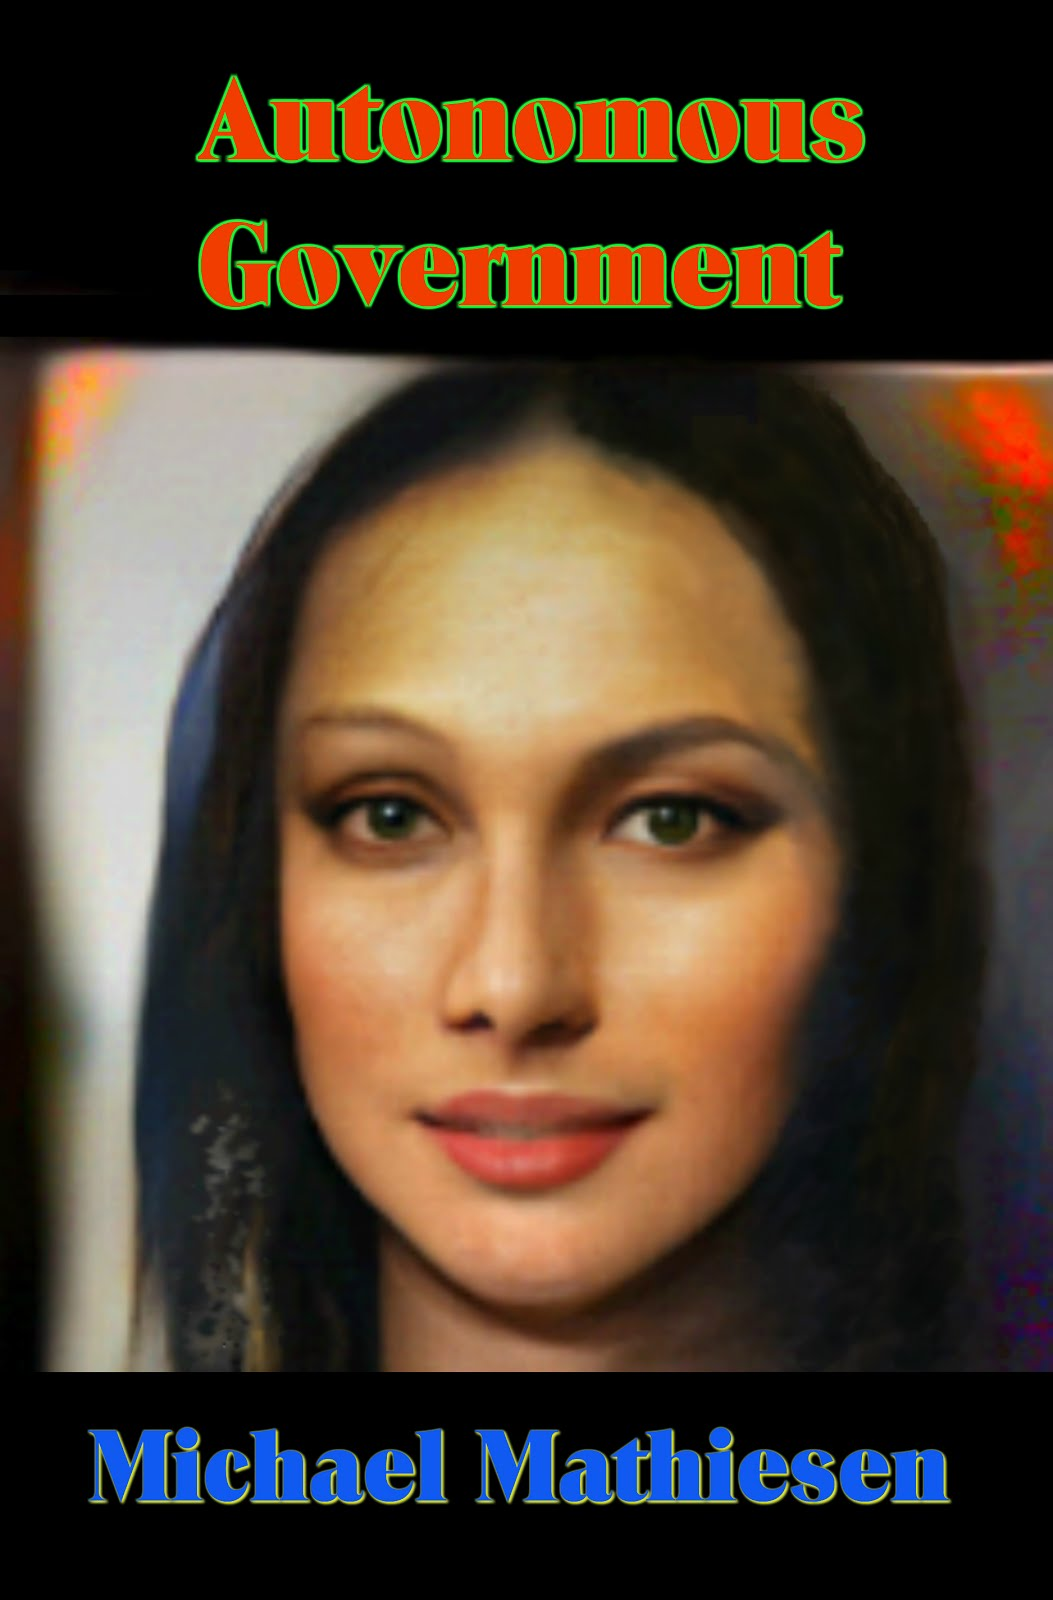 The Autonomous Government